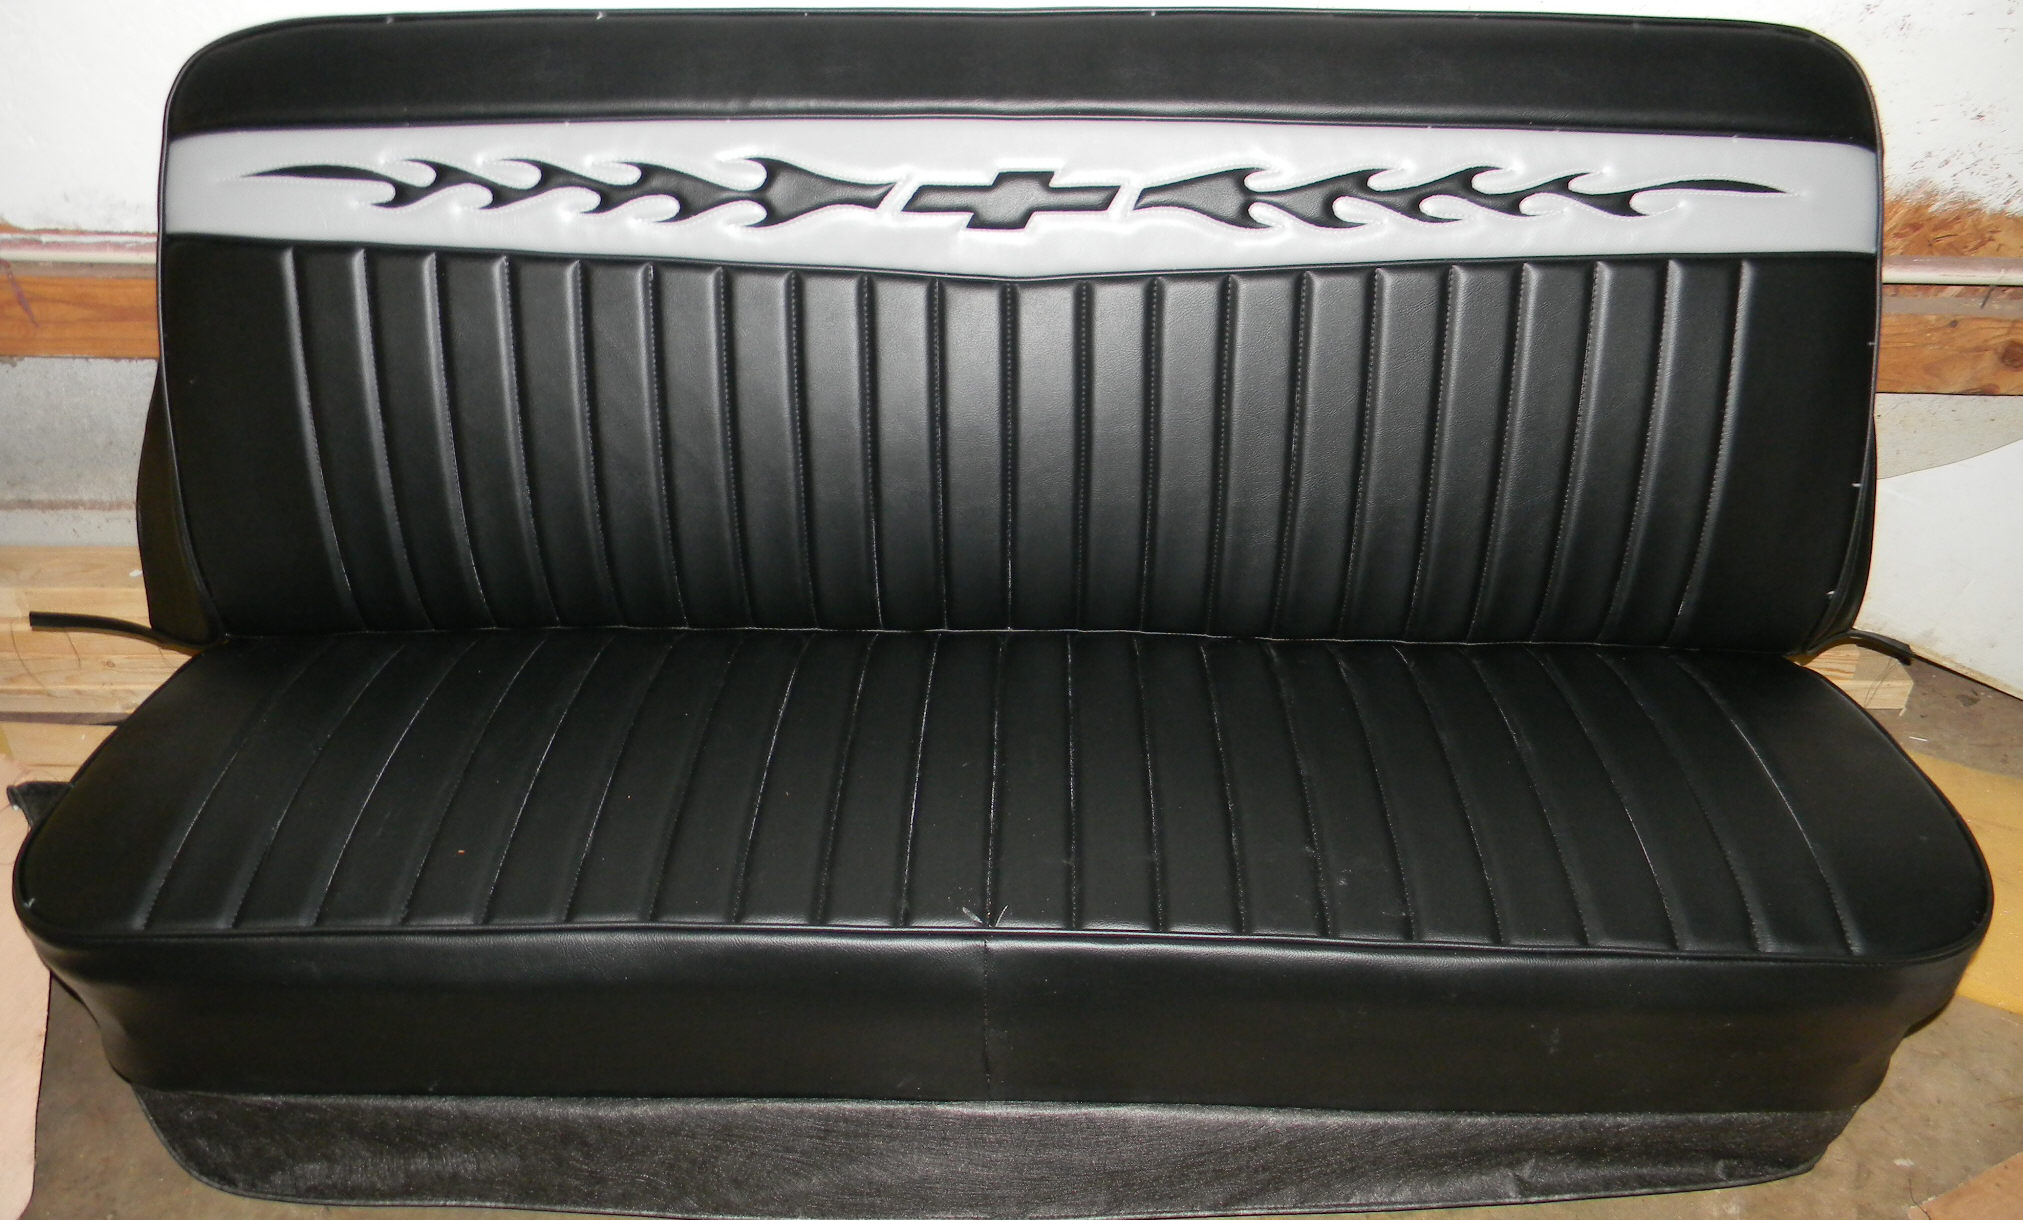 lone ranger c10 bench truck seat cover. Black Bedroom Furniture Sets. Home Design Ideas